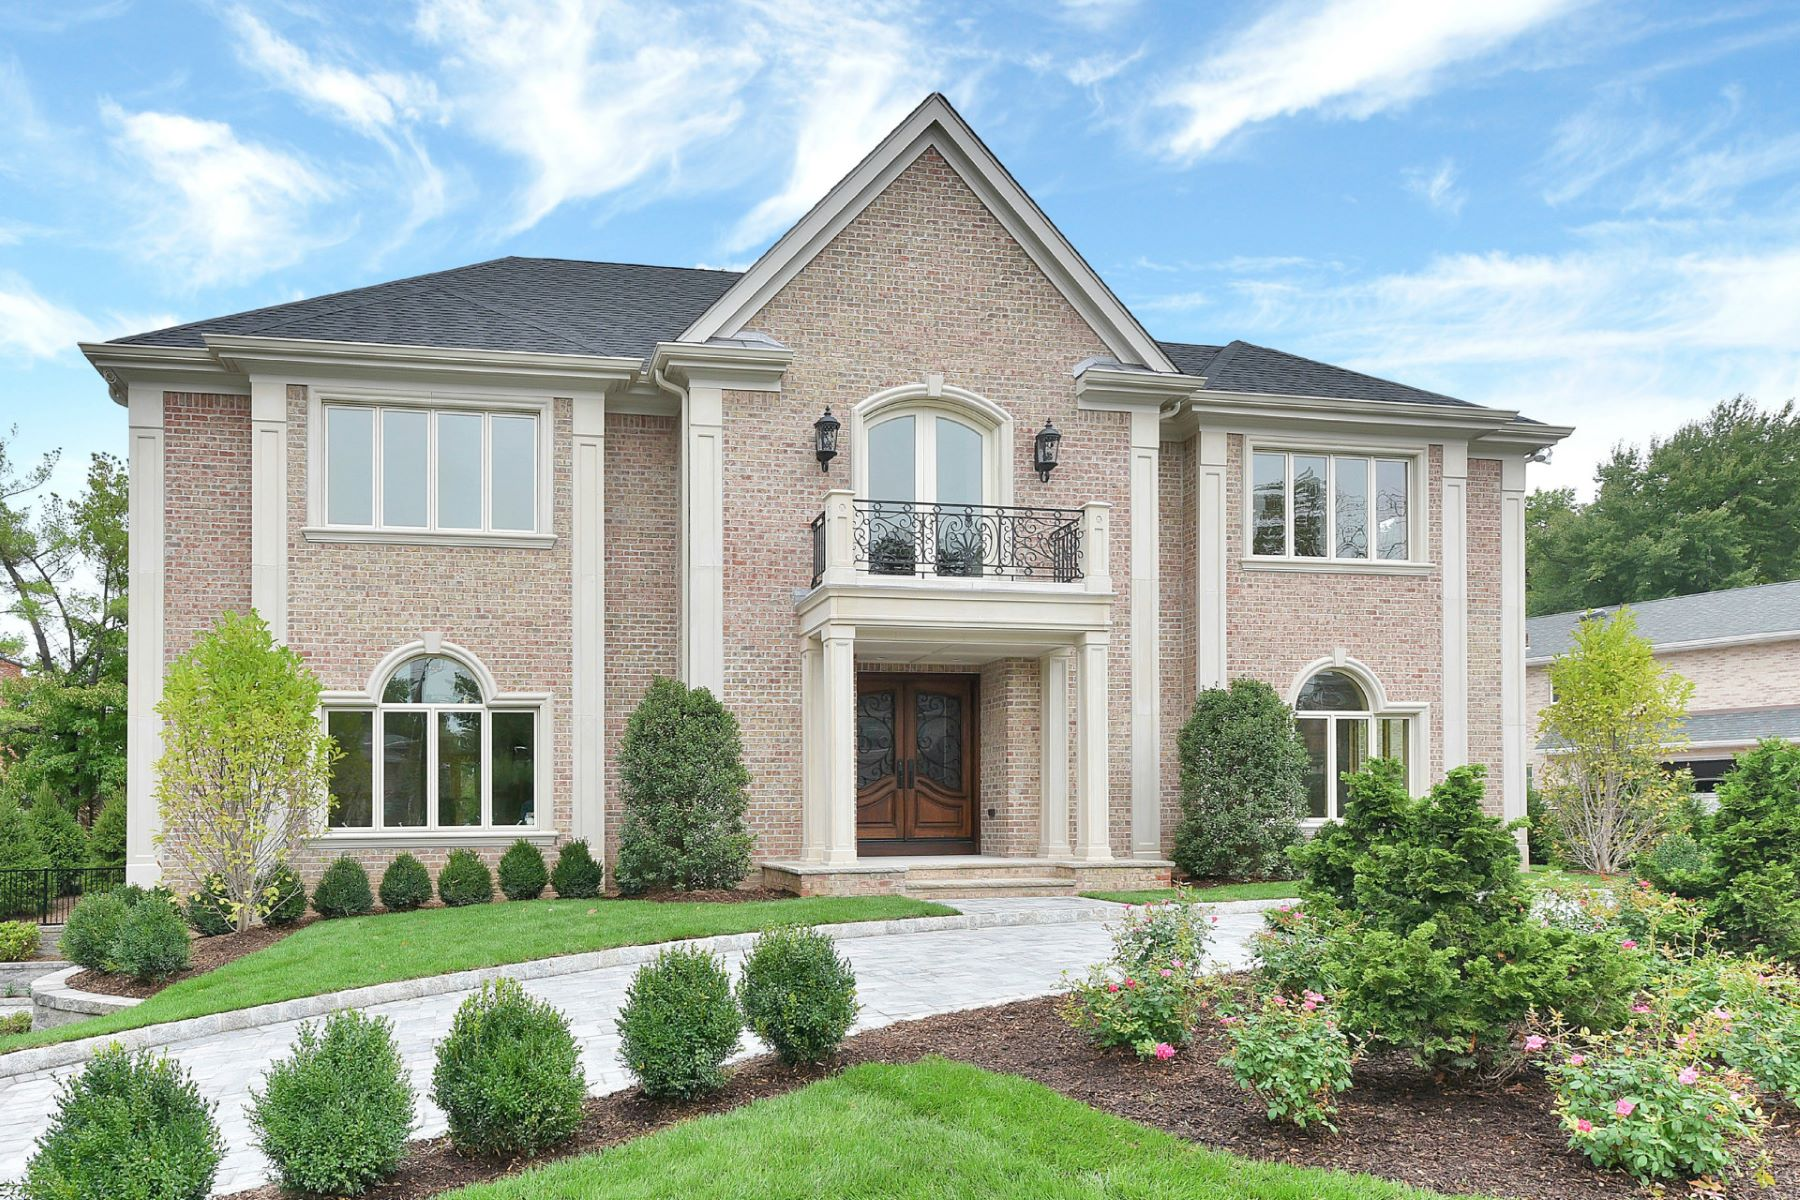 Single Family Home for Sale at Prestigious North Cliffs 2 Stephen Dr Englewood Cliffs, New Jersey, 07632 United States